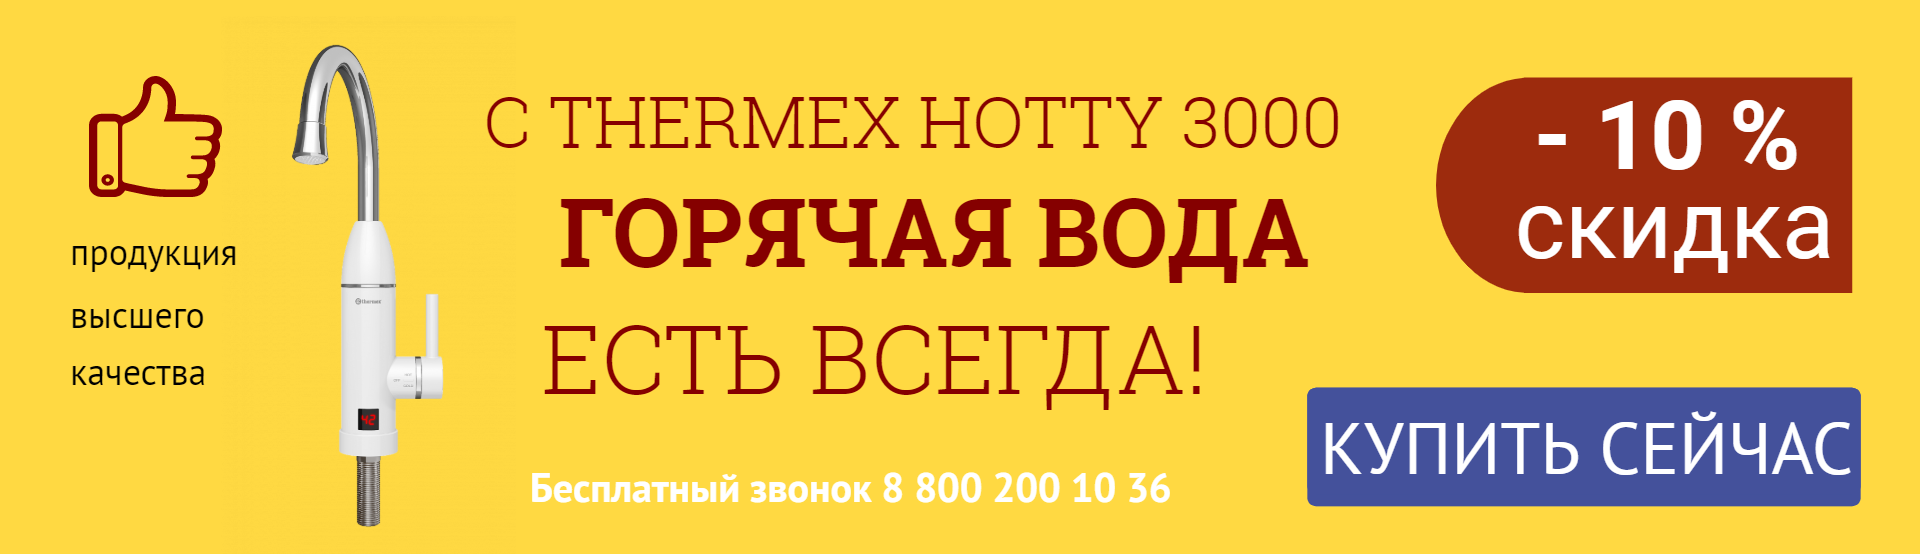 Thermex Hotty 3000